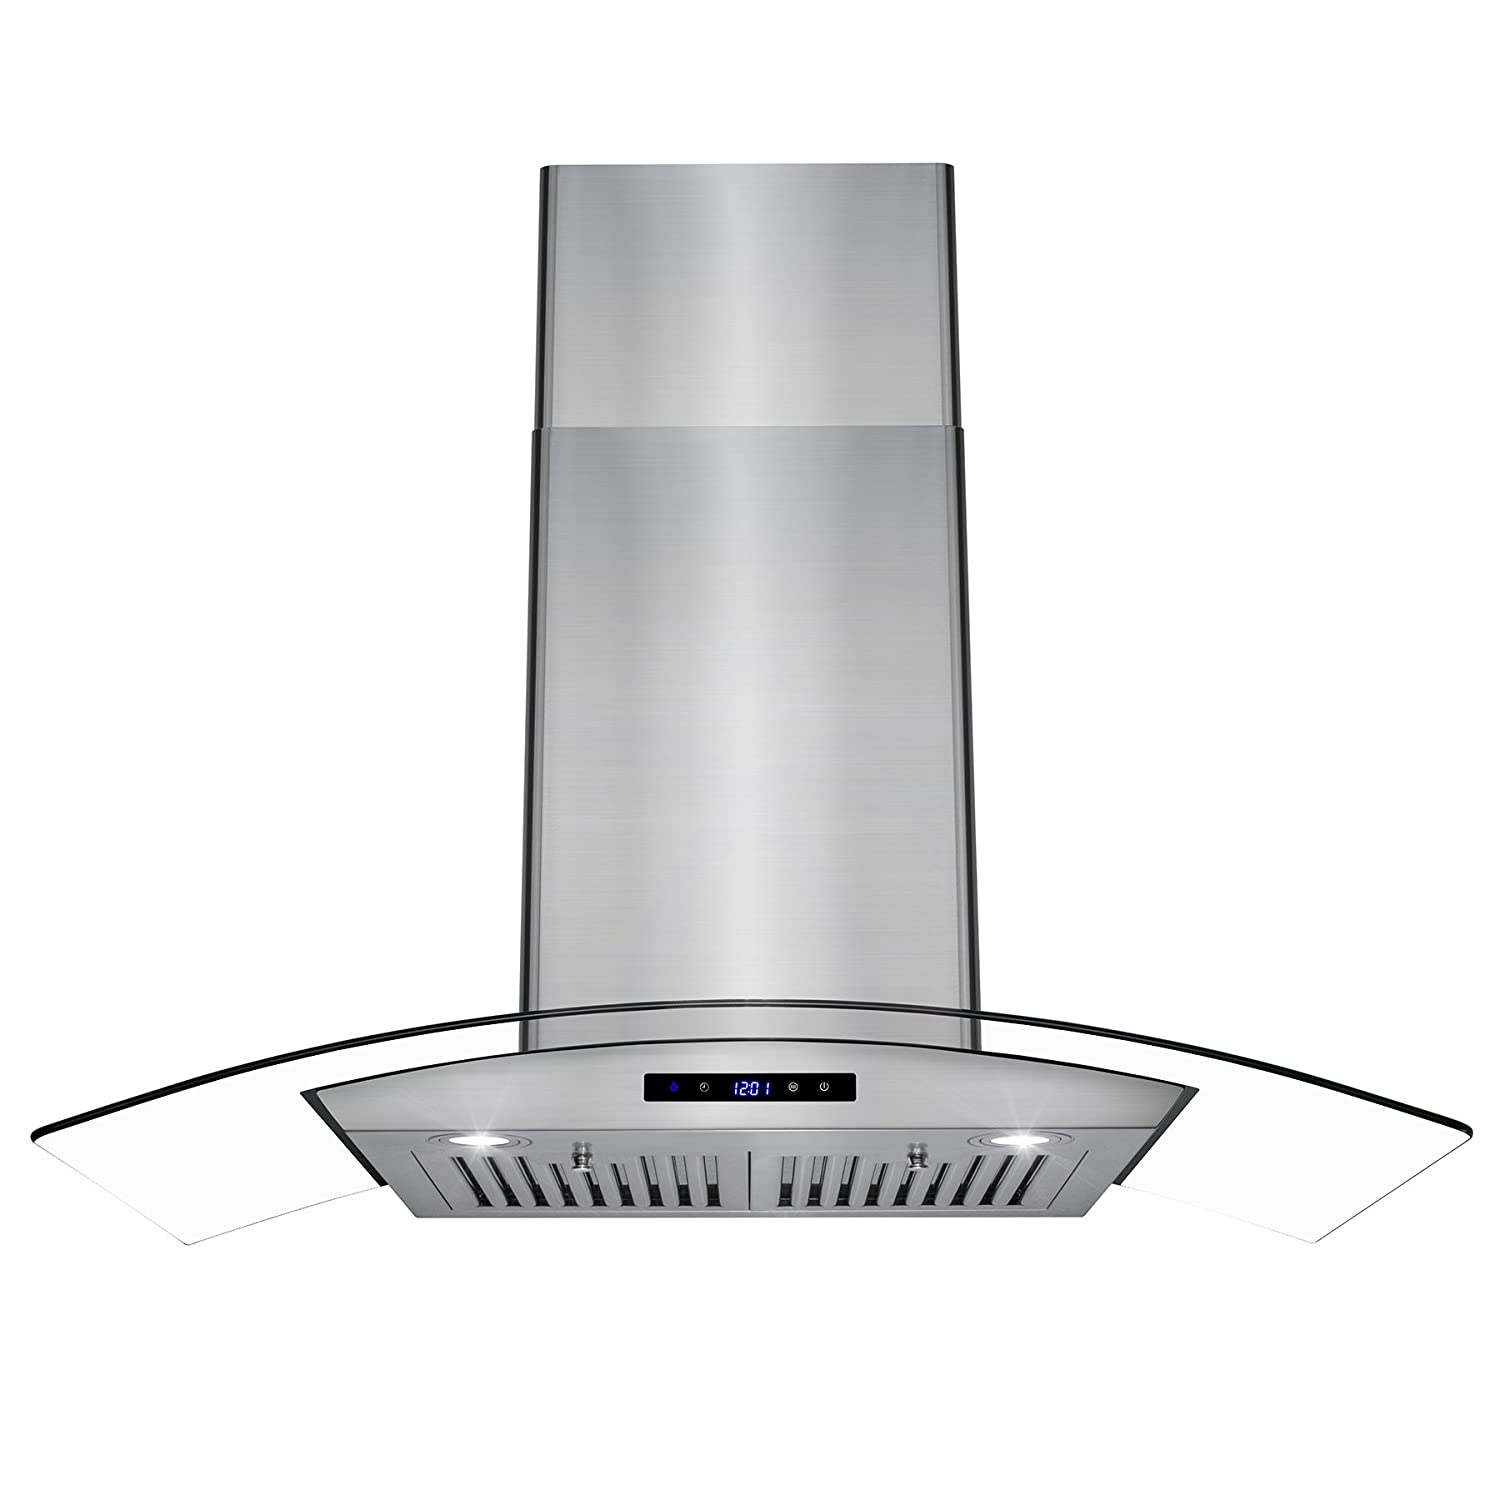 AKDY 36 Wall Mount Stainless Steel Glass Range Hood Touch Panel Control Baffle Filter AK-RH0289